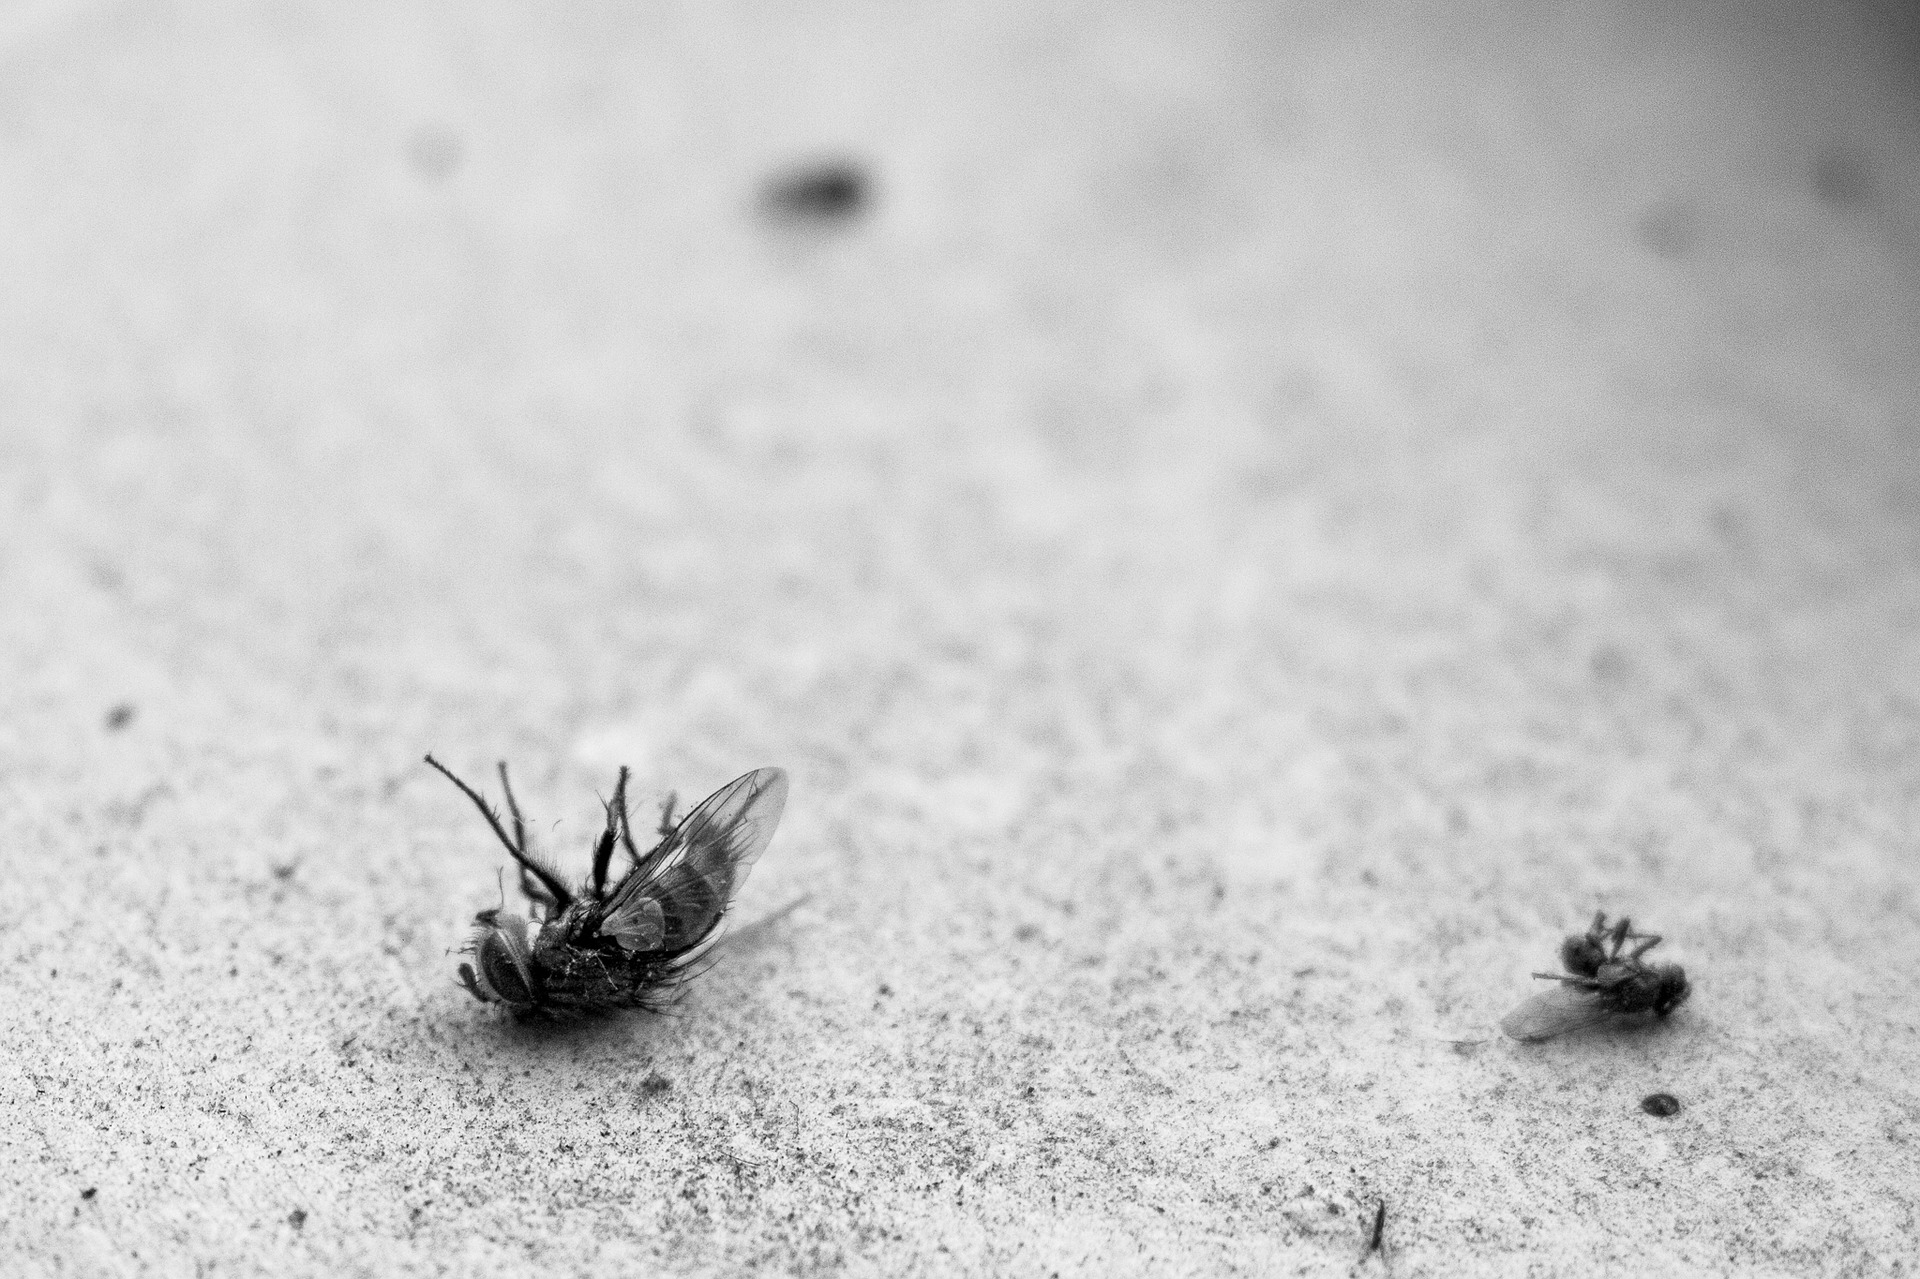 Dead flies to illustrate a Czech weather idiom about falling flies in heat.